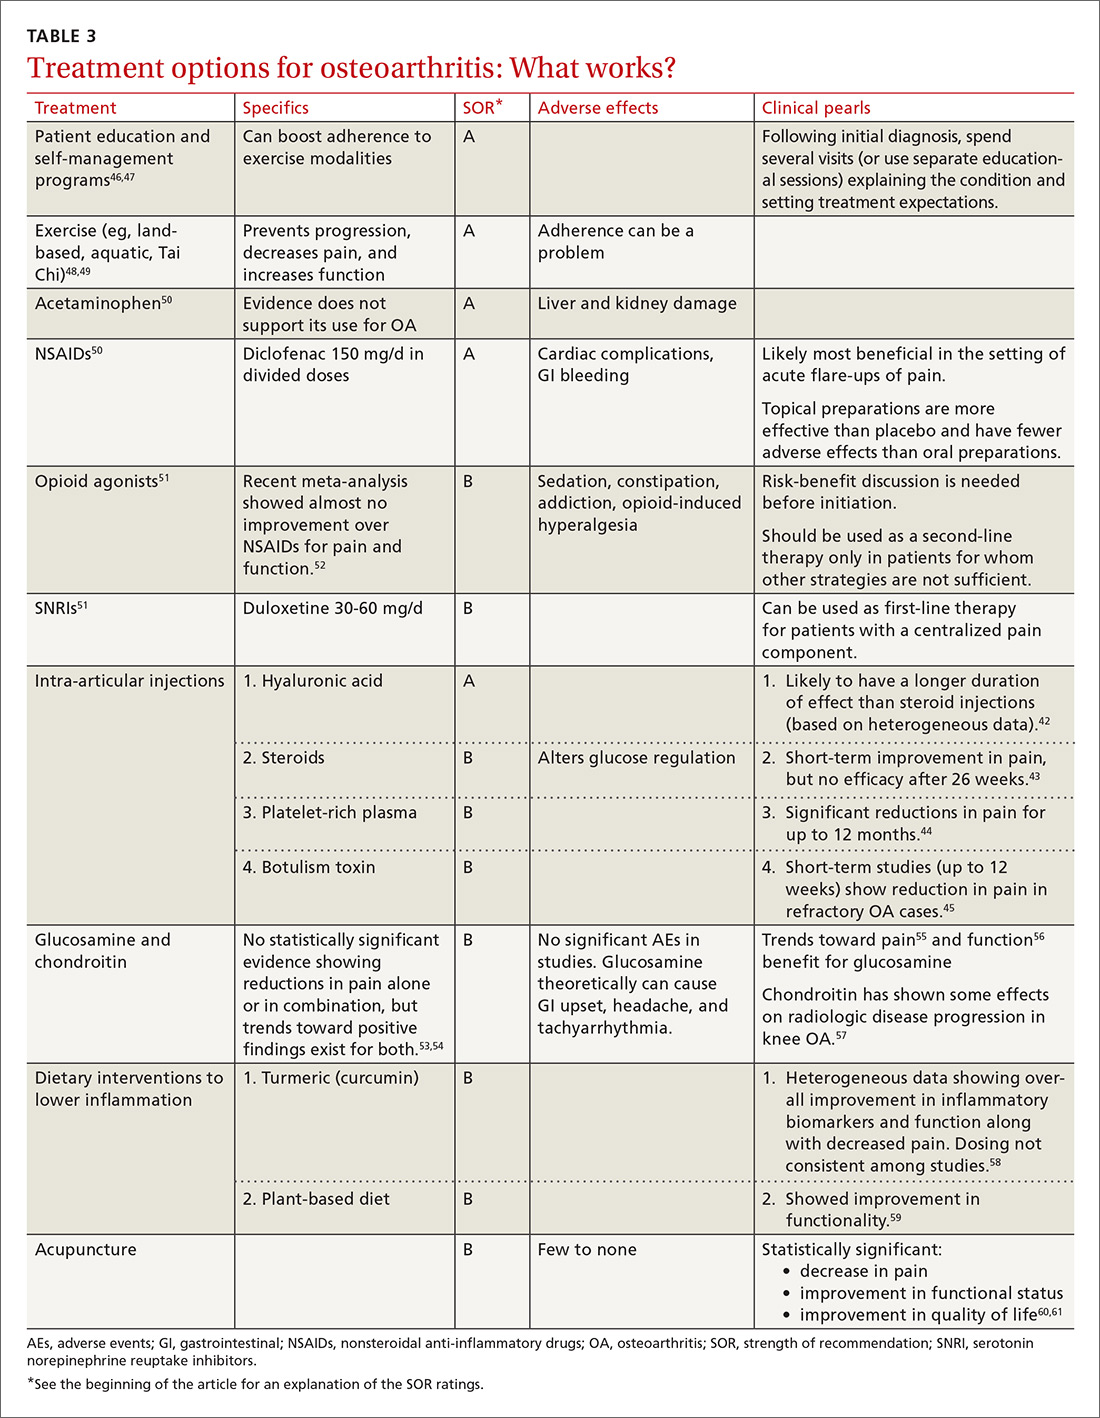 Treatment options for osteoarthritis: What works? image